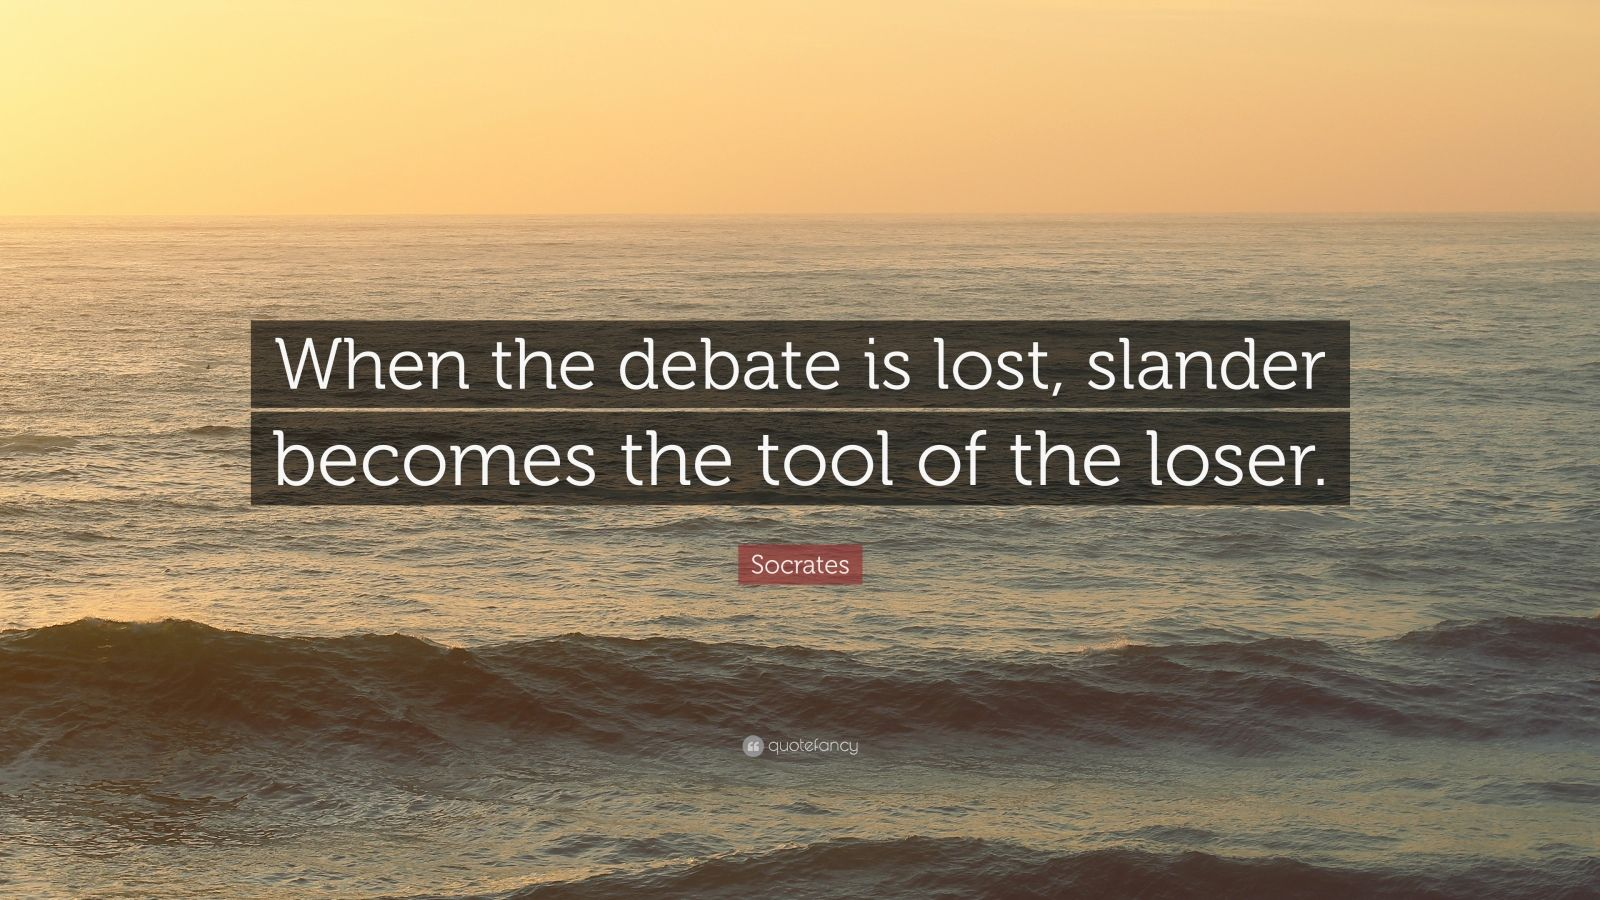 Socrates Quote When The Debate Is Lost Slander Becomes The Tool Of The Loser 26 Wallpapers